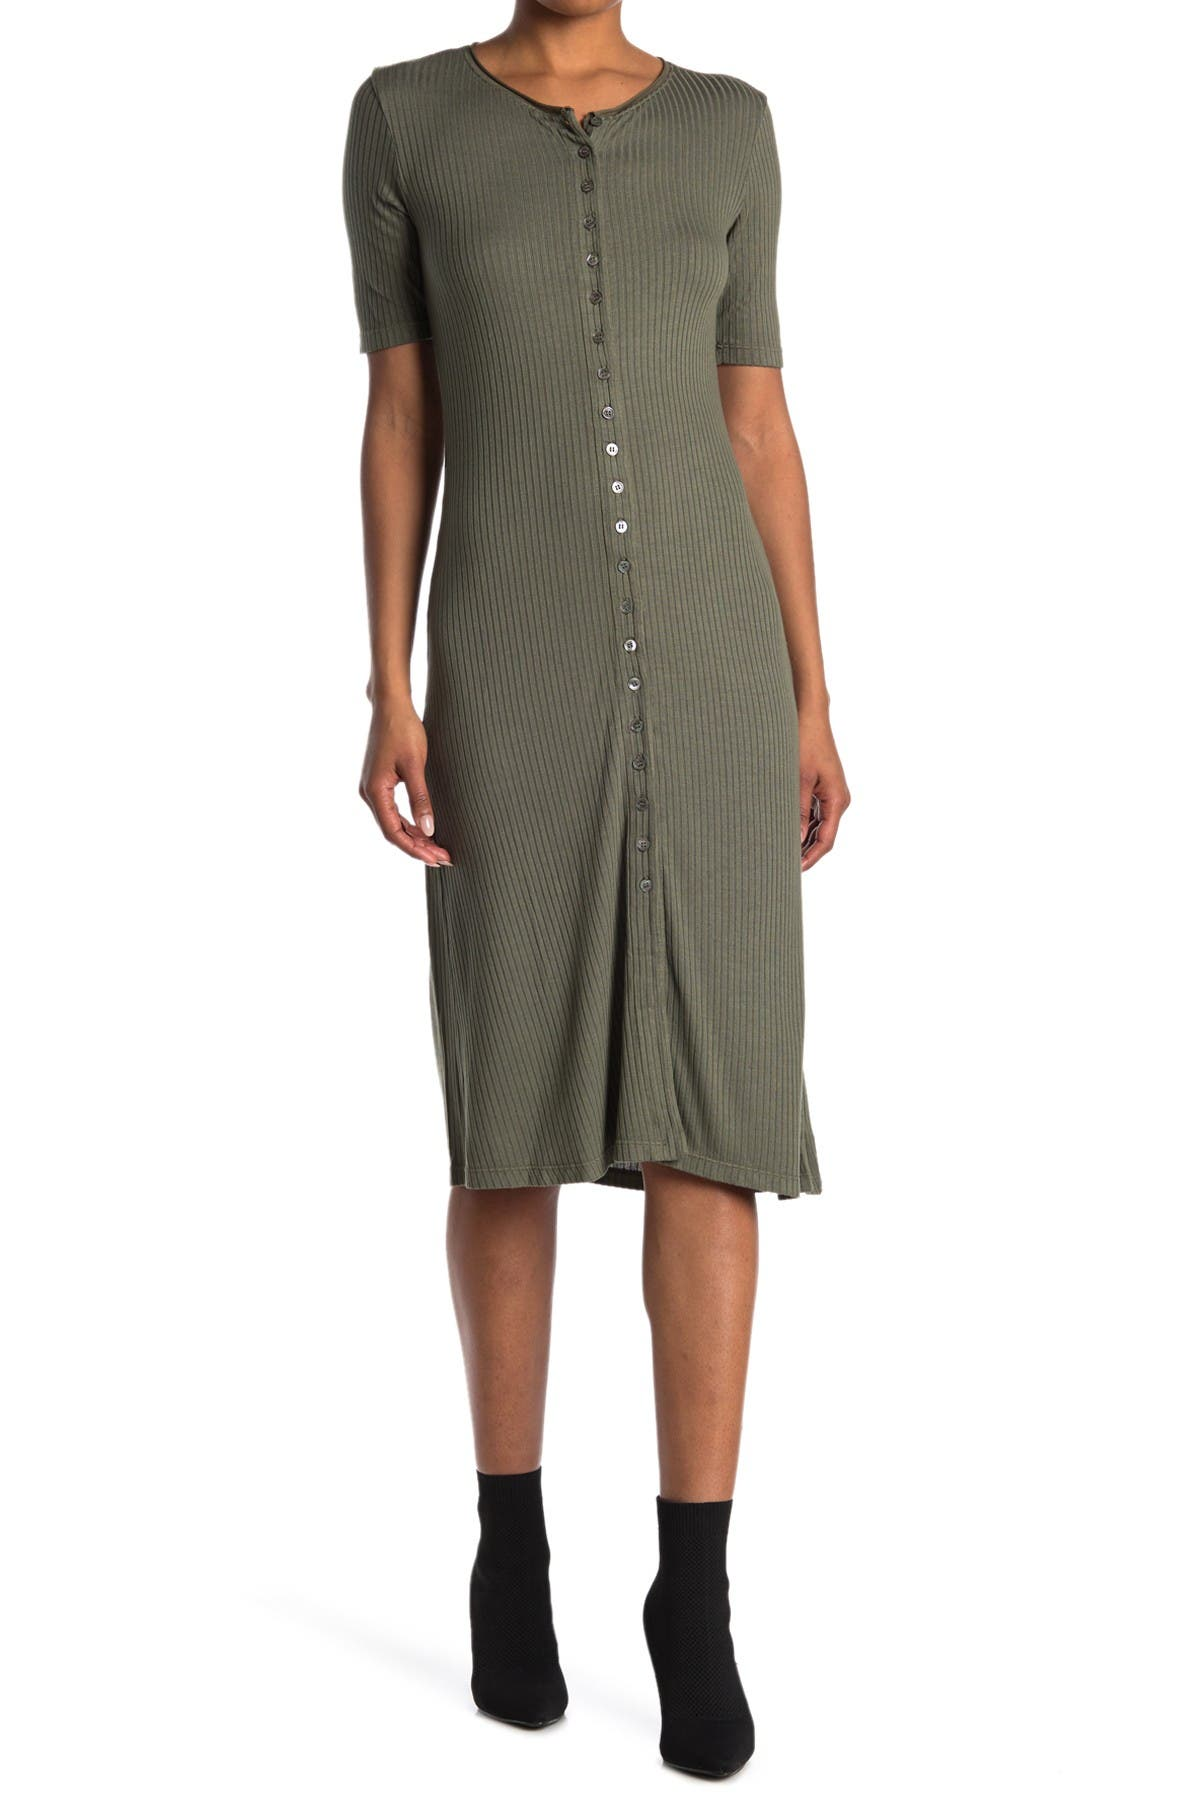 Image of Stateside Rib Maxi Button Up Dress